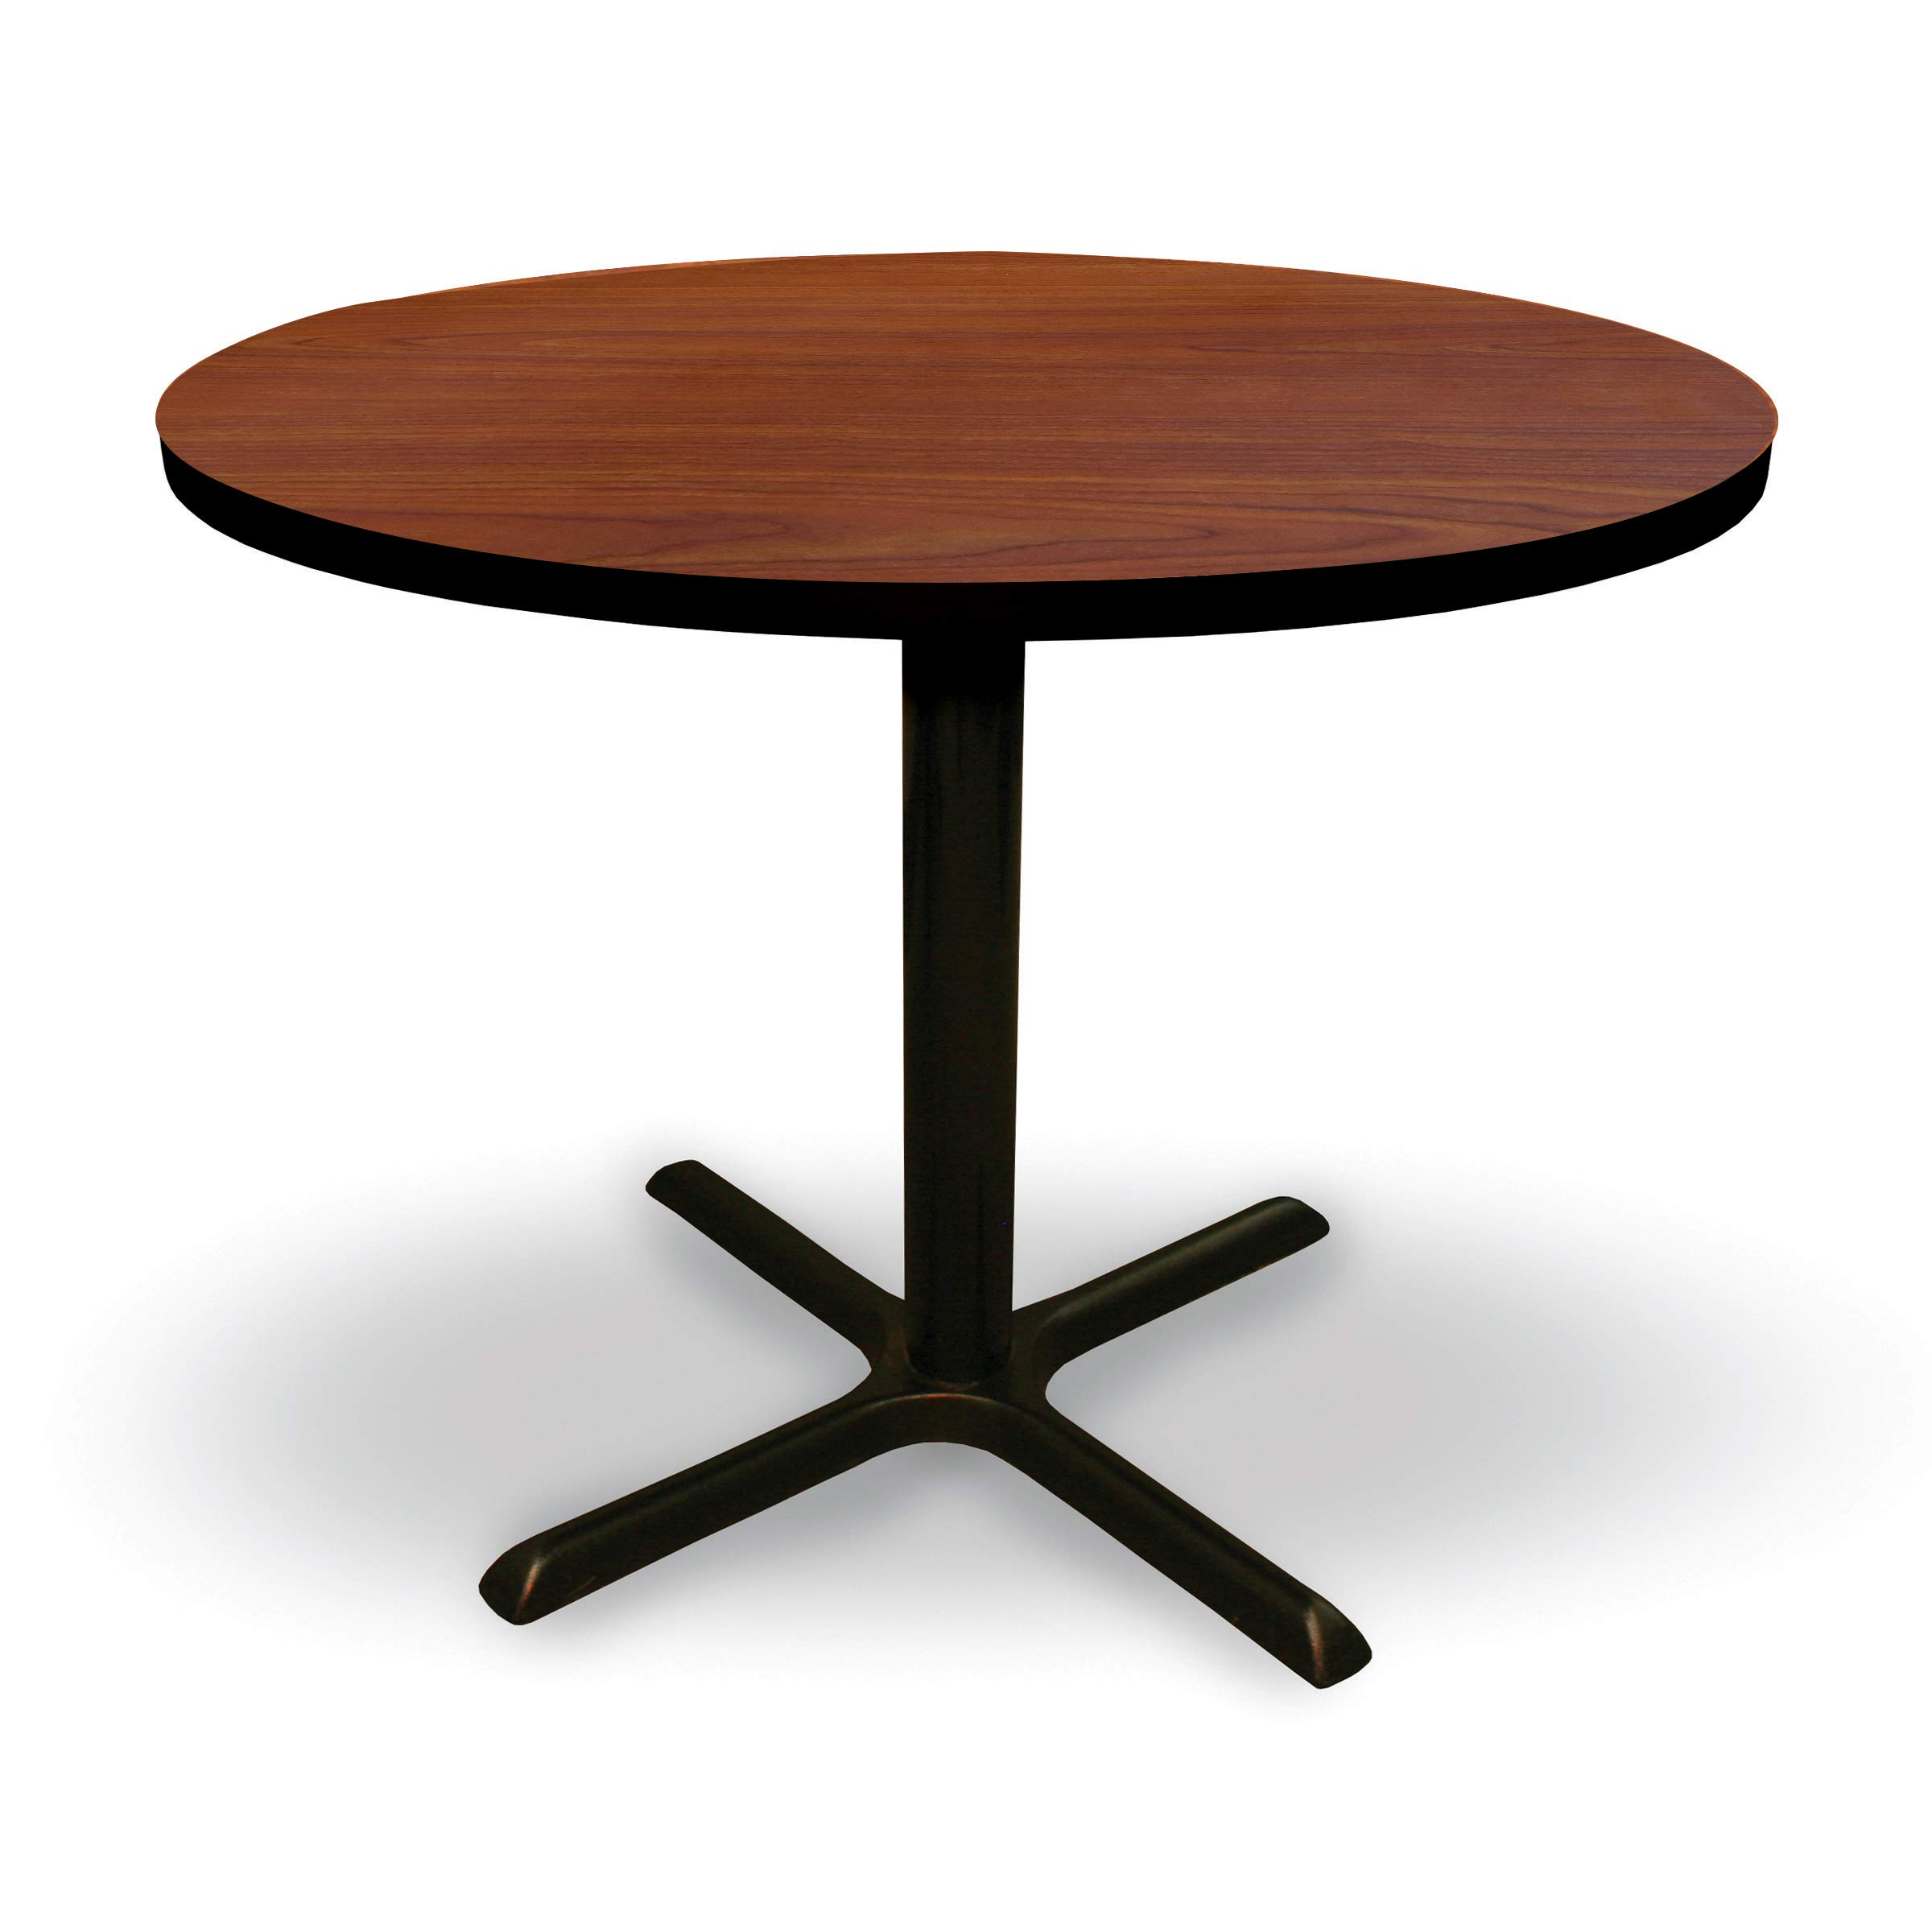 36'' Round Conference, Break Room, Multipurpose Table - Collectors Cherry Laminate/Black Finish by MAMOF